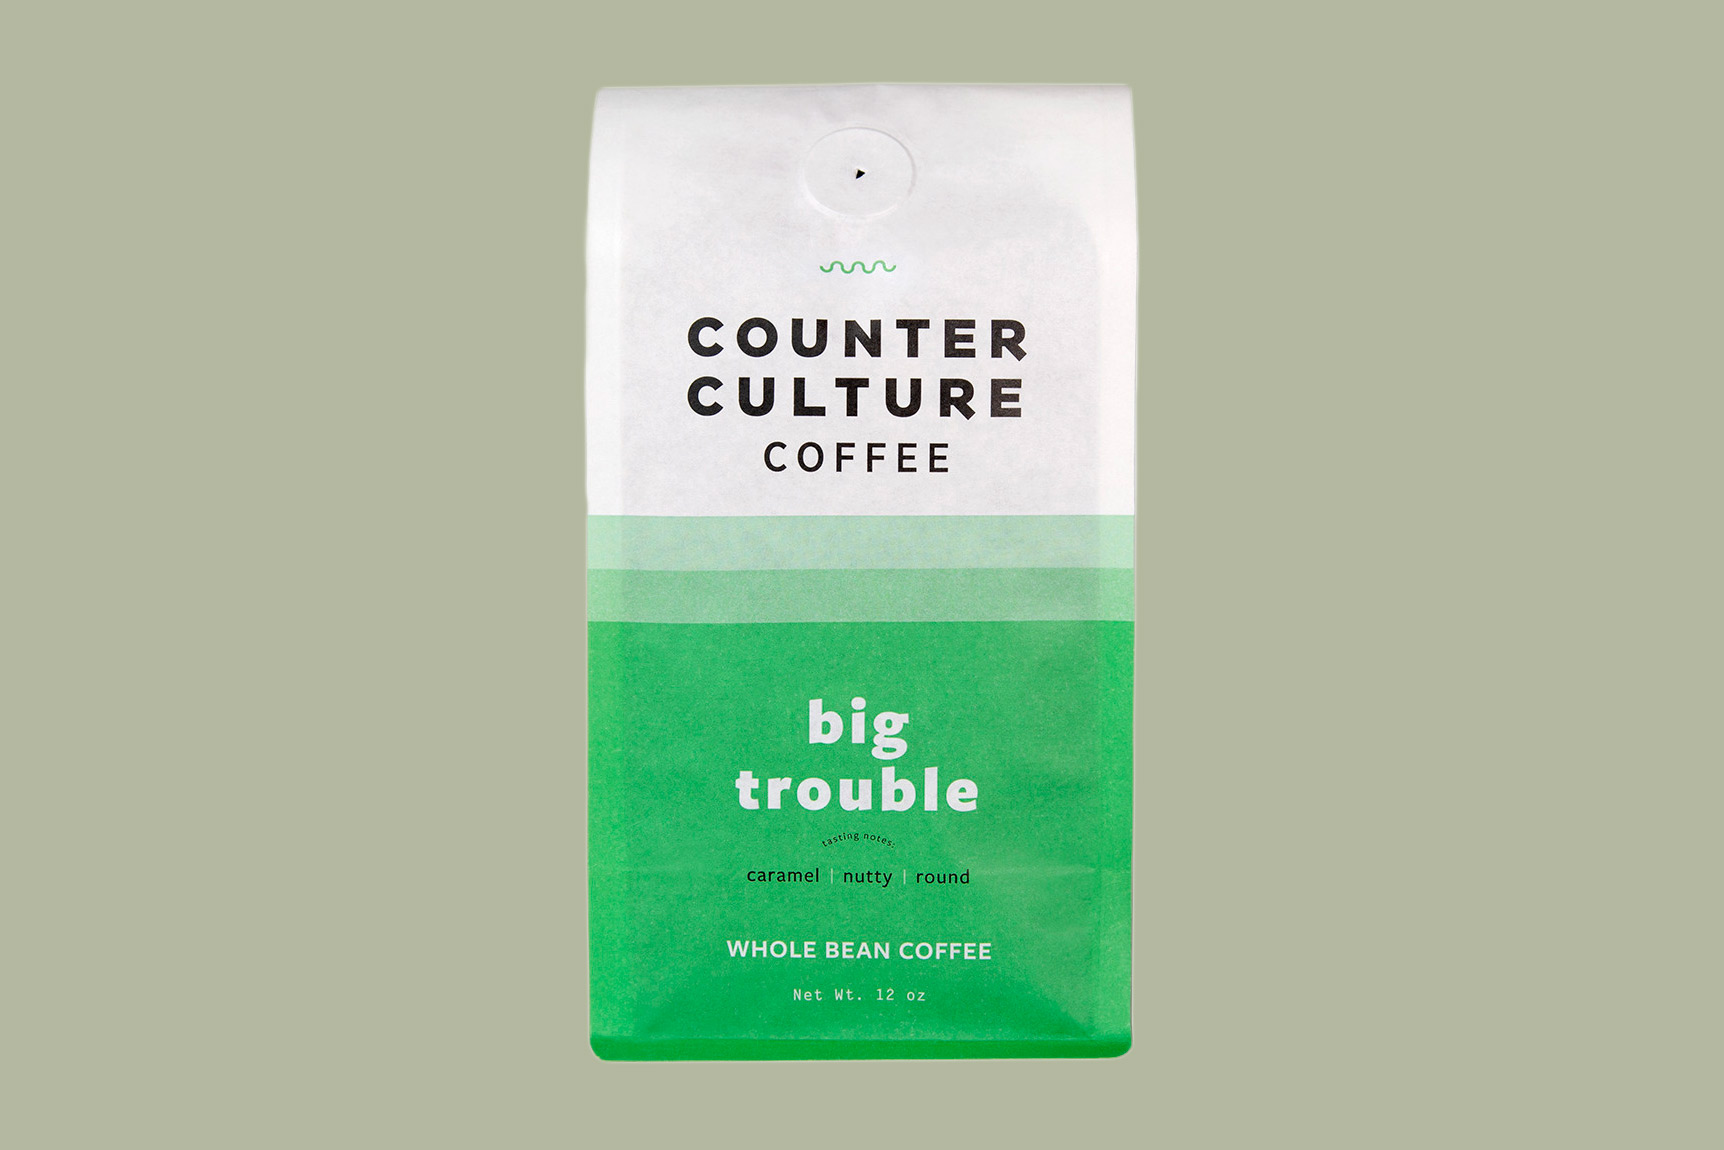 bag of counter culture coffee